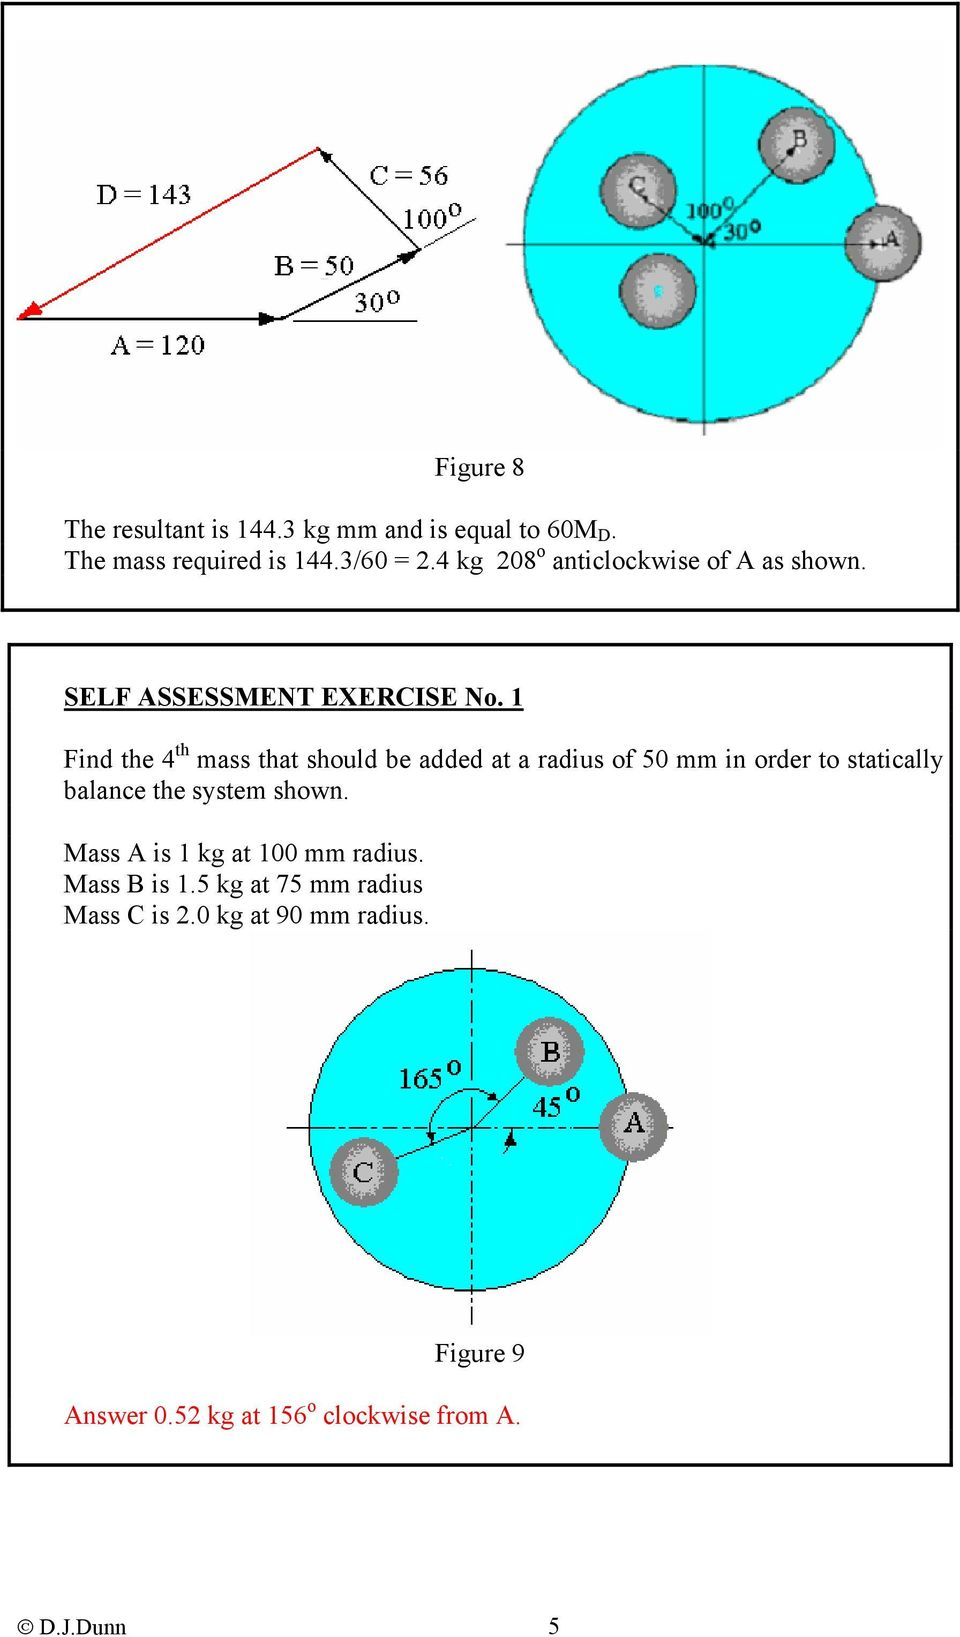 1 Find the 4 th mass that should be added at a radius of 50 mm in order to statically balance the system